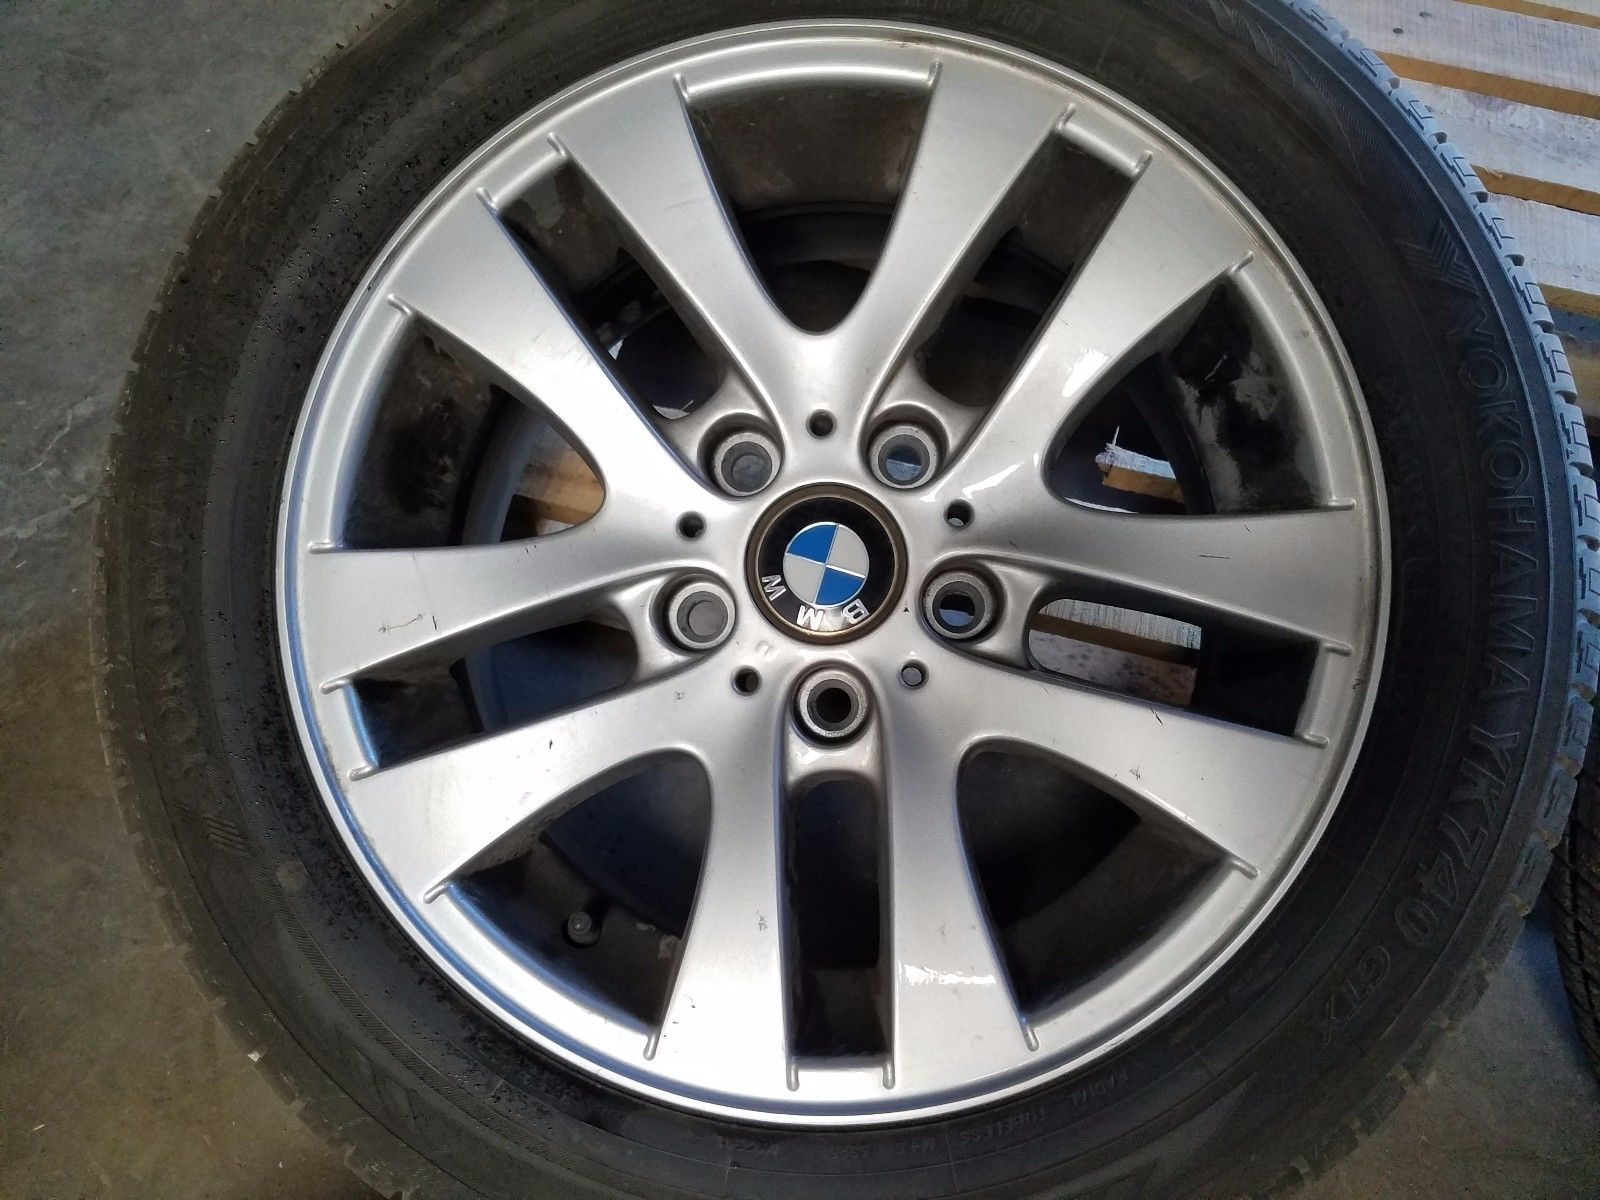 2006 2011 bmw e90 325i 328i 330i wheel rims tires set r16. Black Bedroom Furniture Sets. Home Design Ideas